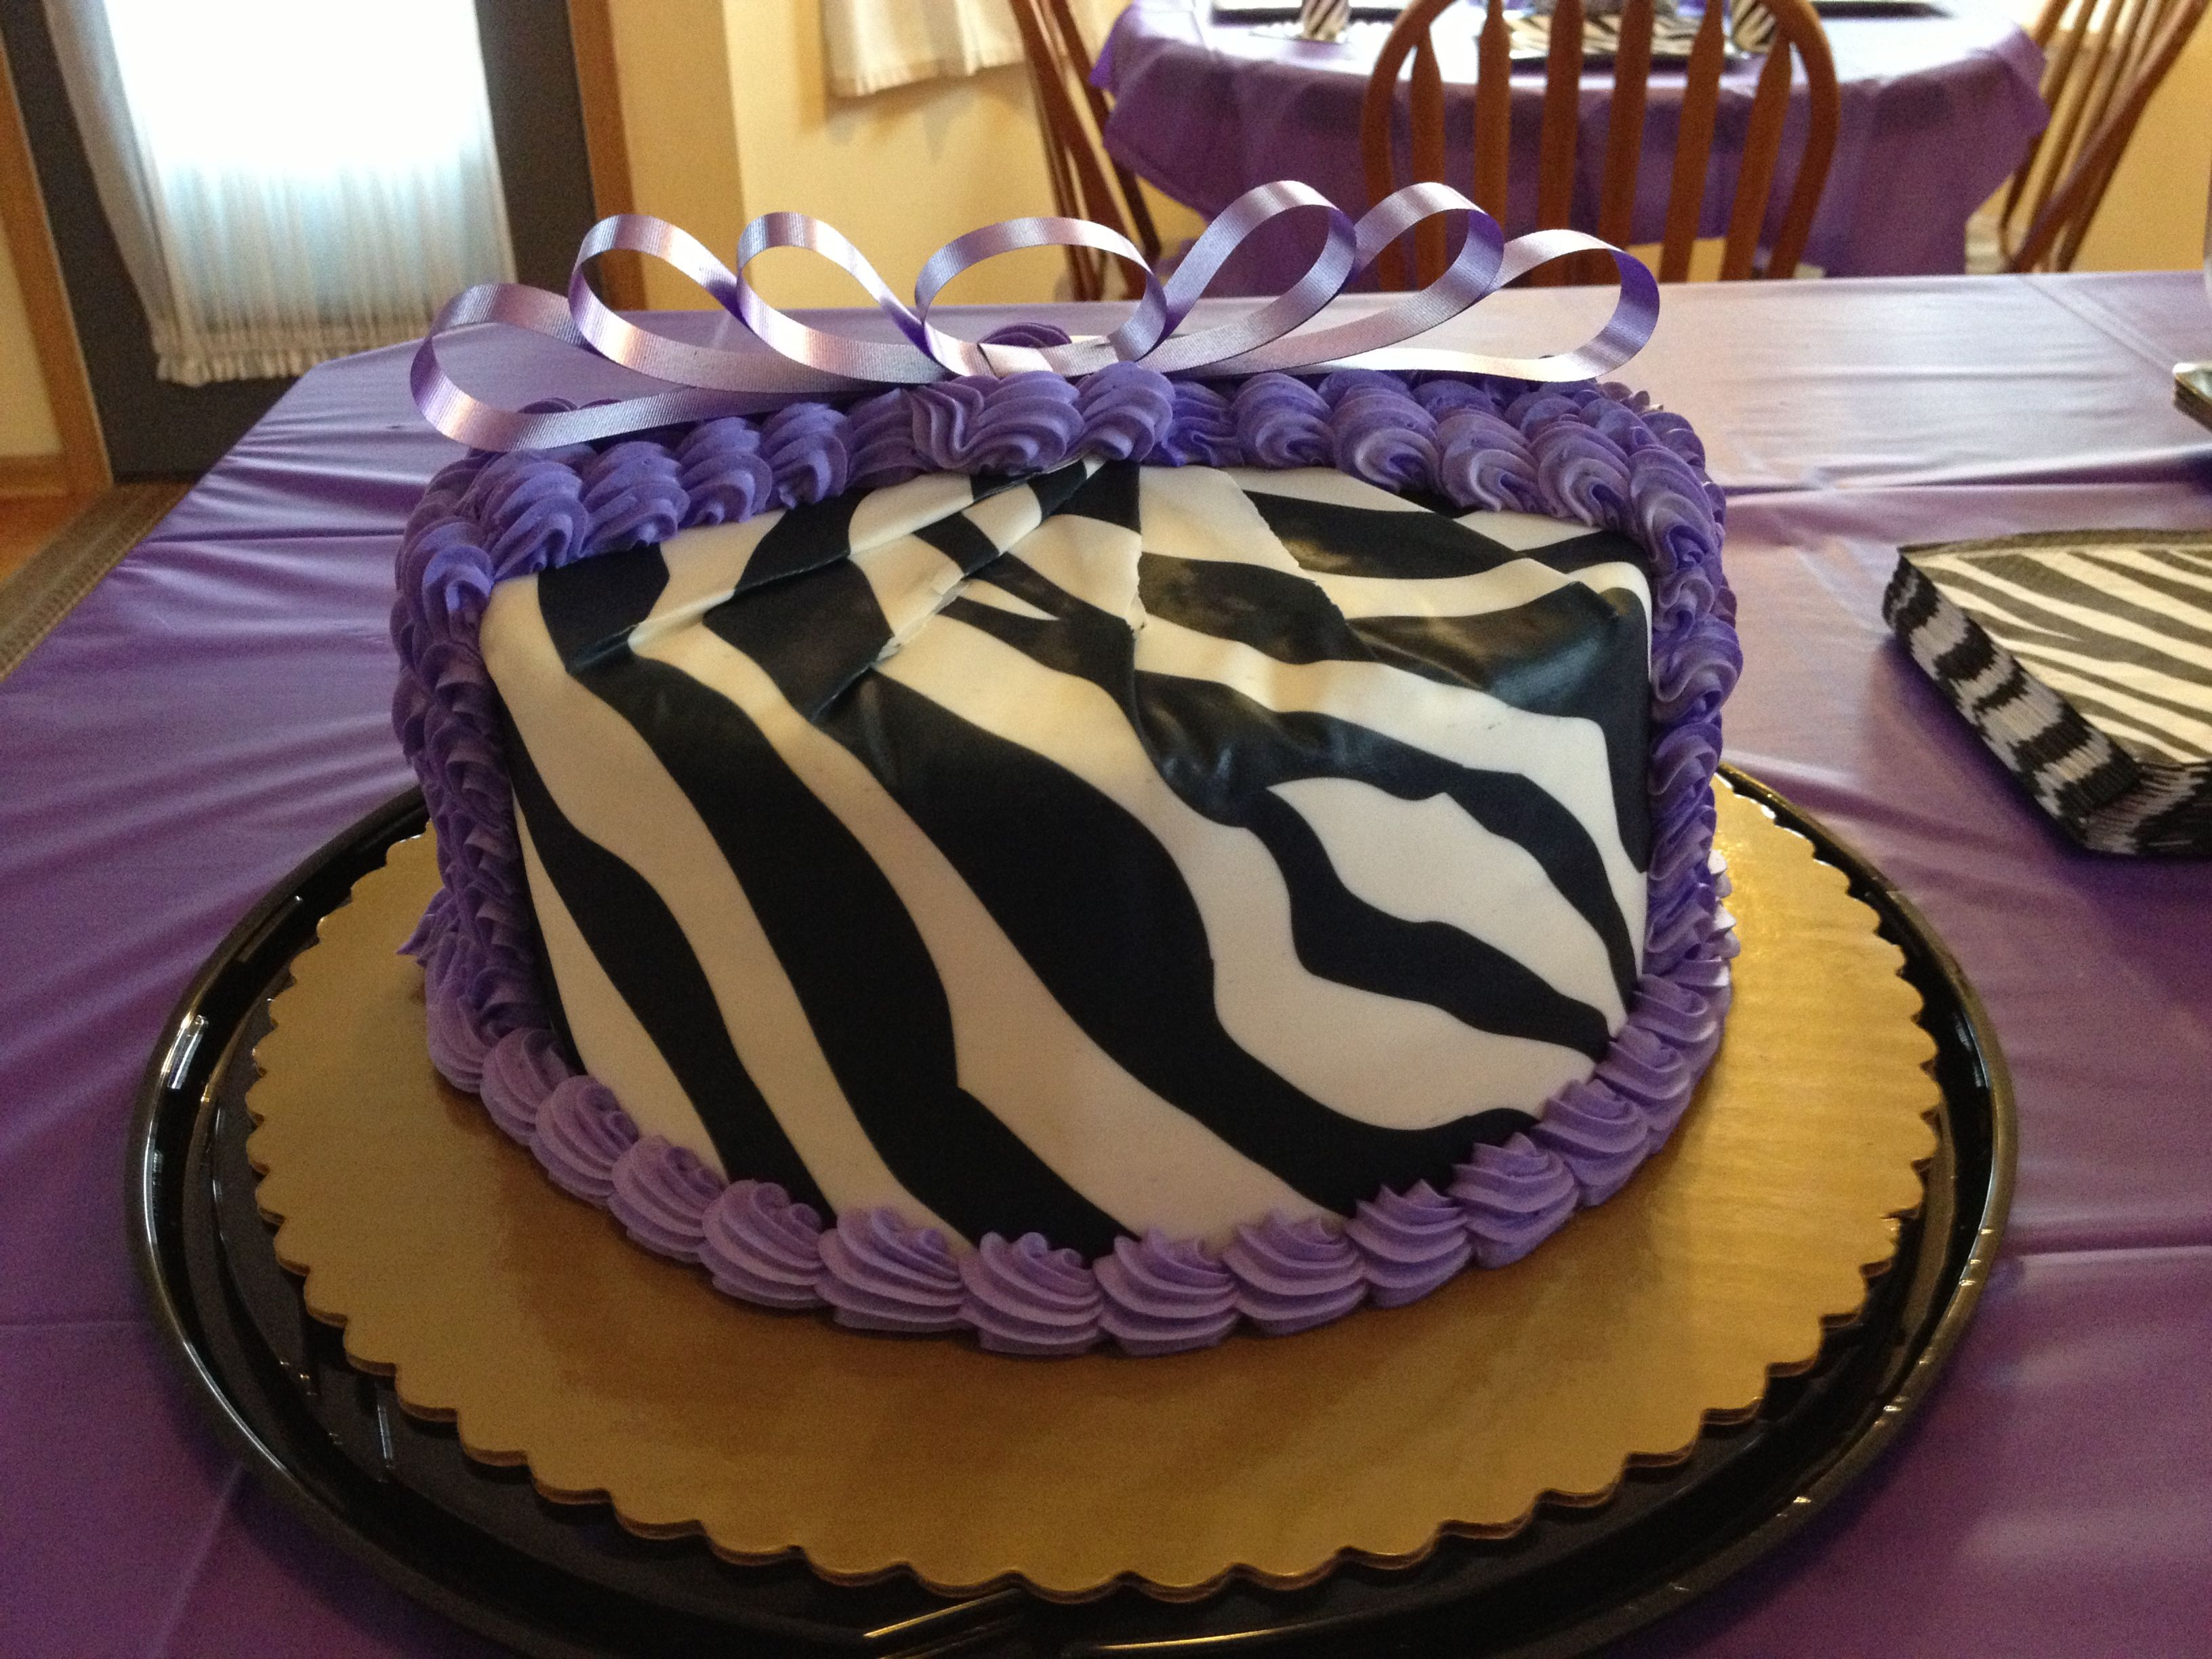 Tremendous Zebra Birthday Cake From Kroger They Did Such A Great Job Cake Personalised Birthday Cards Cominlily Jamesorg